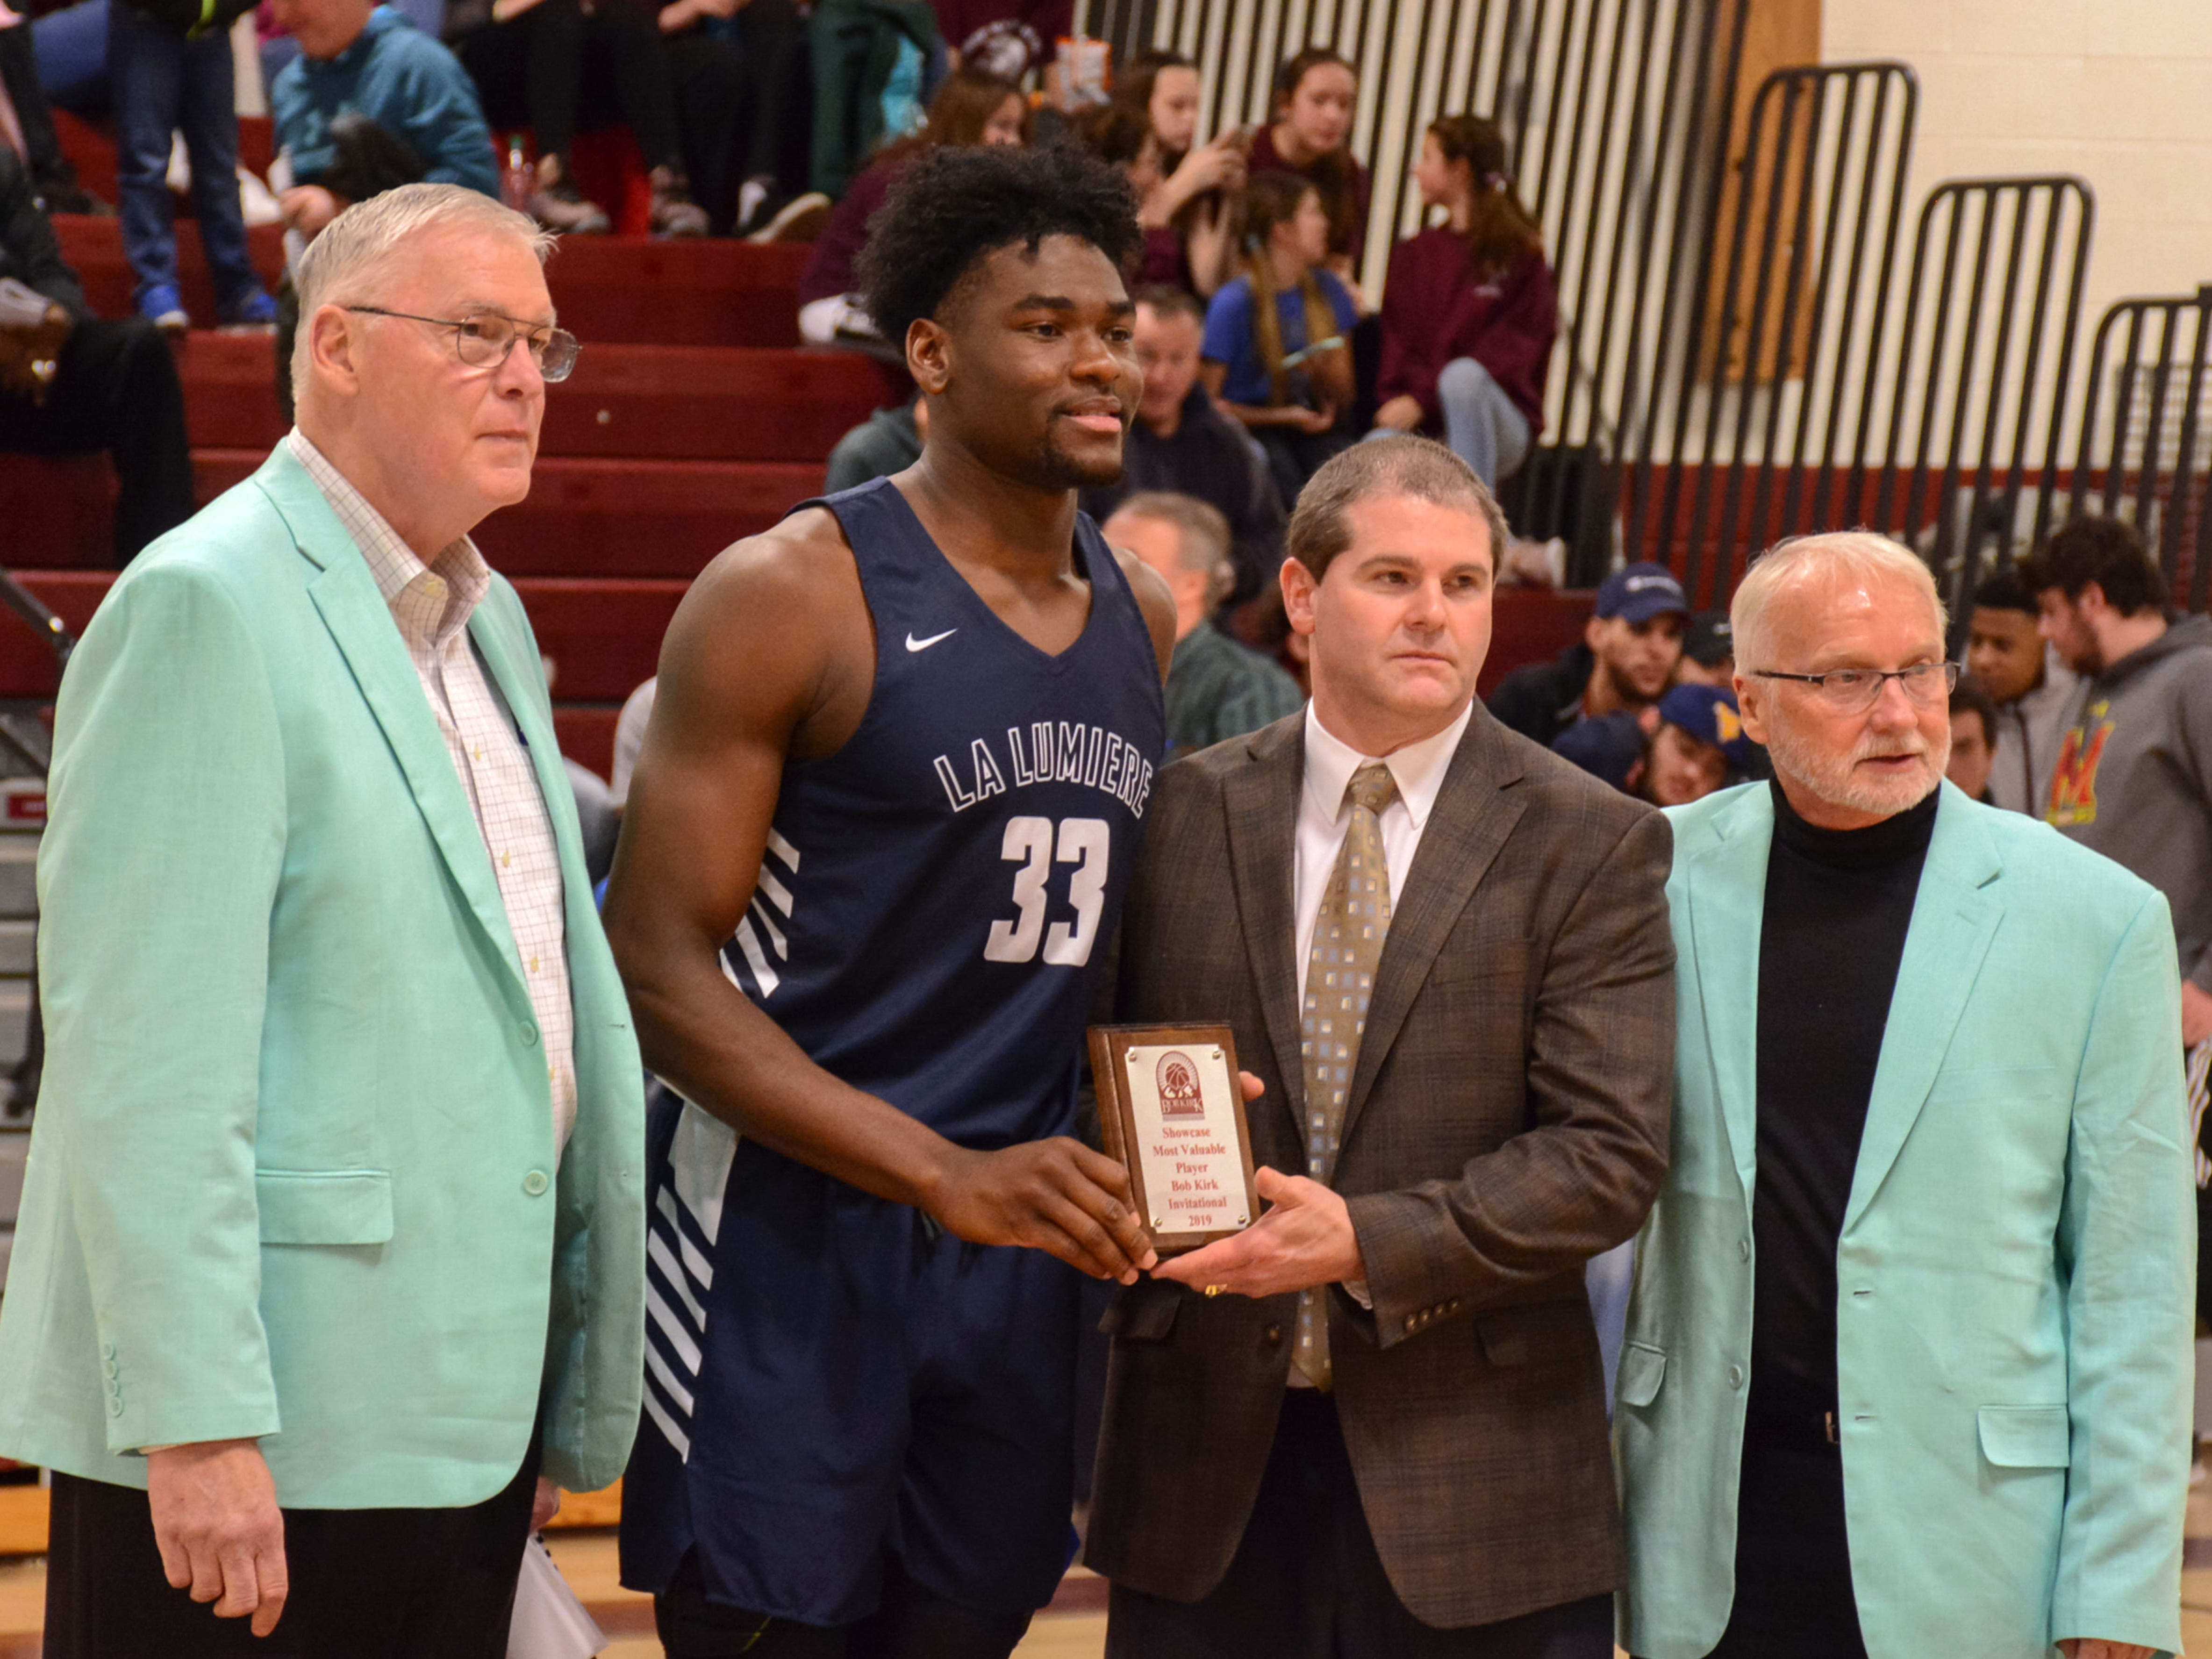 Rochester's Isaiah Stewart (33) of the La Lumiere School in La Porte, Indiana, was named the Most Valuable Player during the Lakers 95-67 win over Takoma Academy at the Bob Kirk Invitational in Cumberland, Maryland. Stewart plans to play college basketball at the University of Washington.